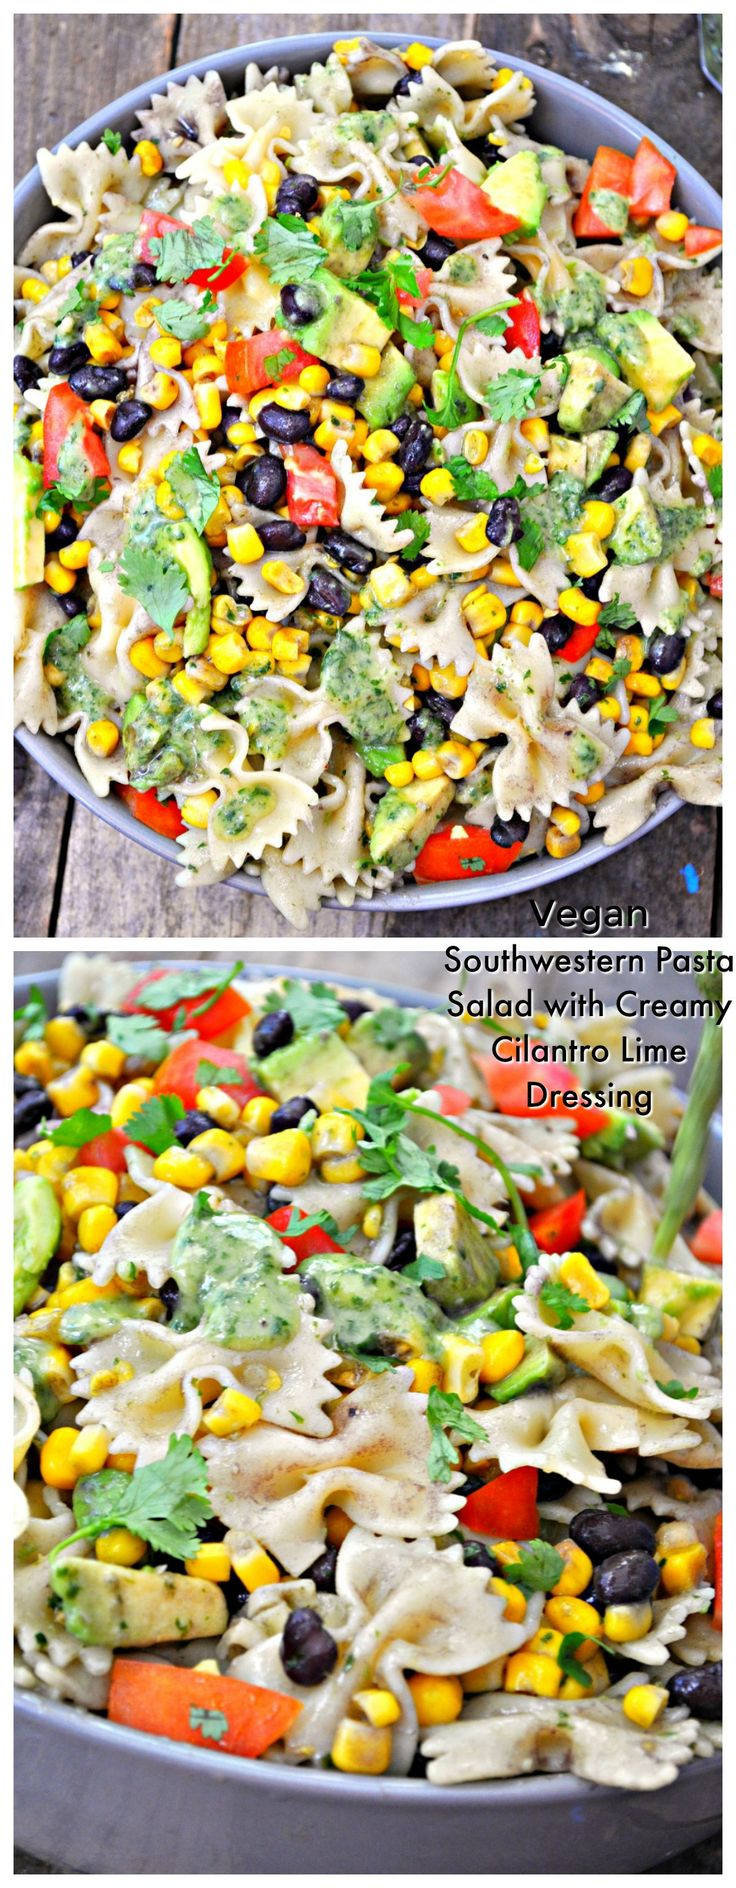 "<p style=""text-align: center;""><span style=""font-family: georgia, palatino, serif;""><strong>Vegan Southwestern Pasta Salad with Creamy Cilantro Lime Dressing</strong></span></p>"